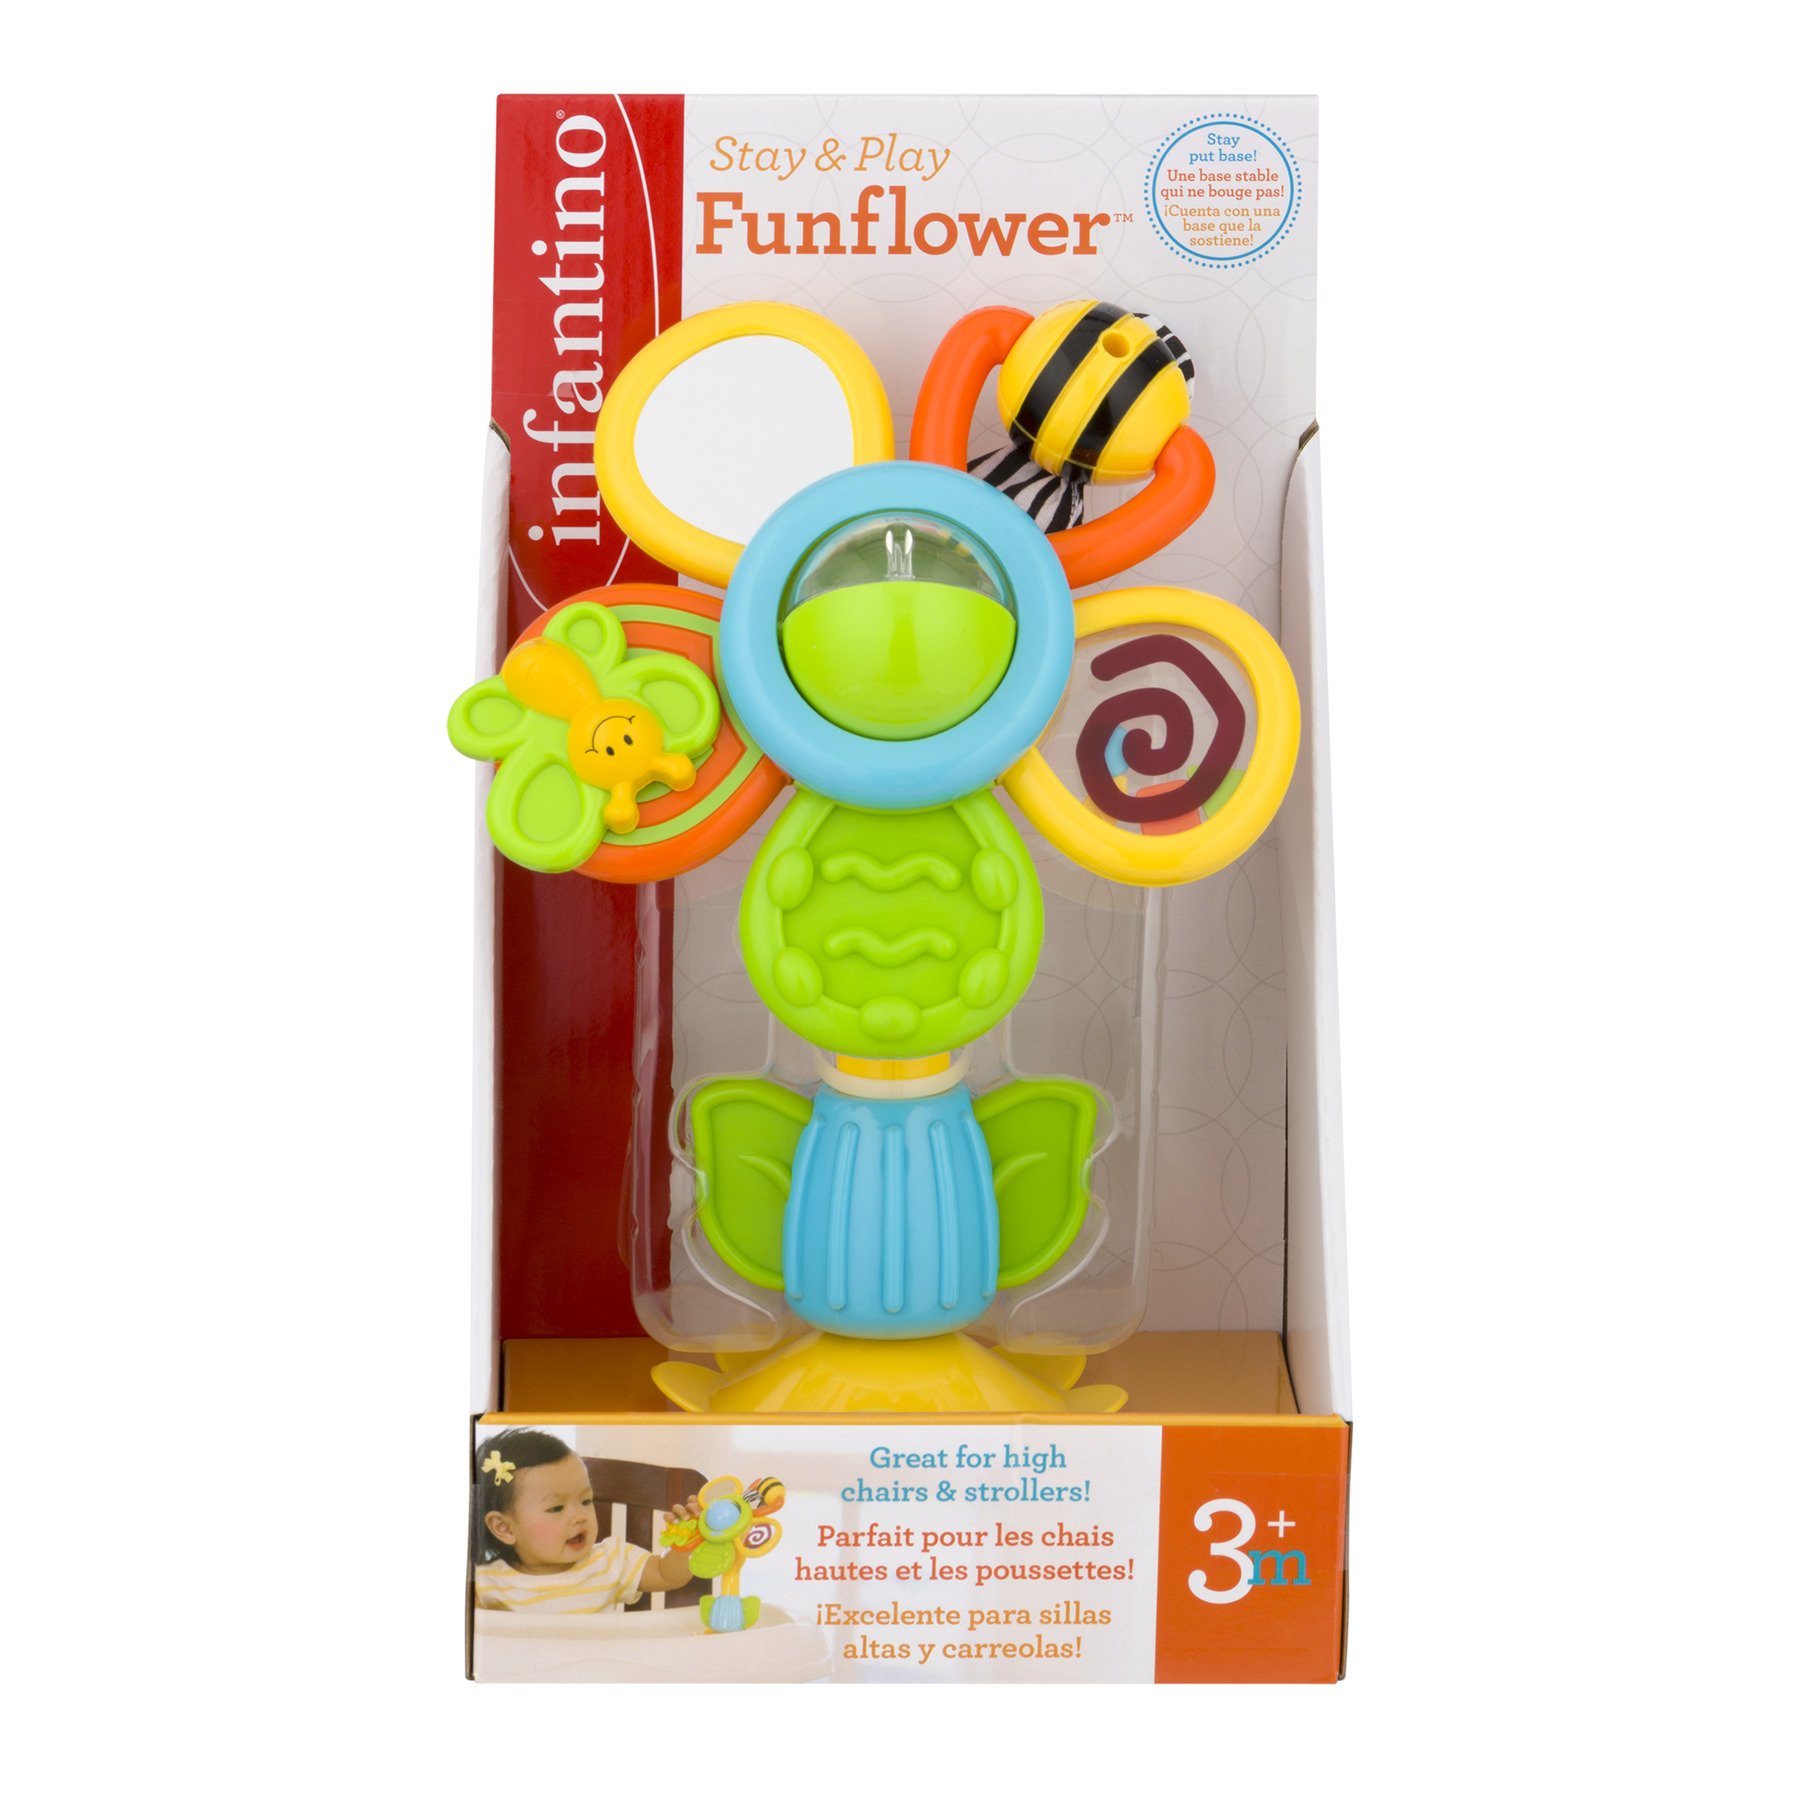 Infantino Stay & Play Fun Flower 3+m, 1.0 CT by Infantino